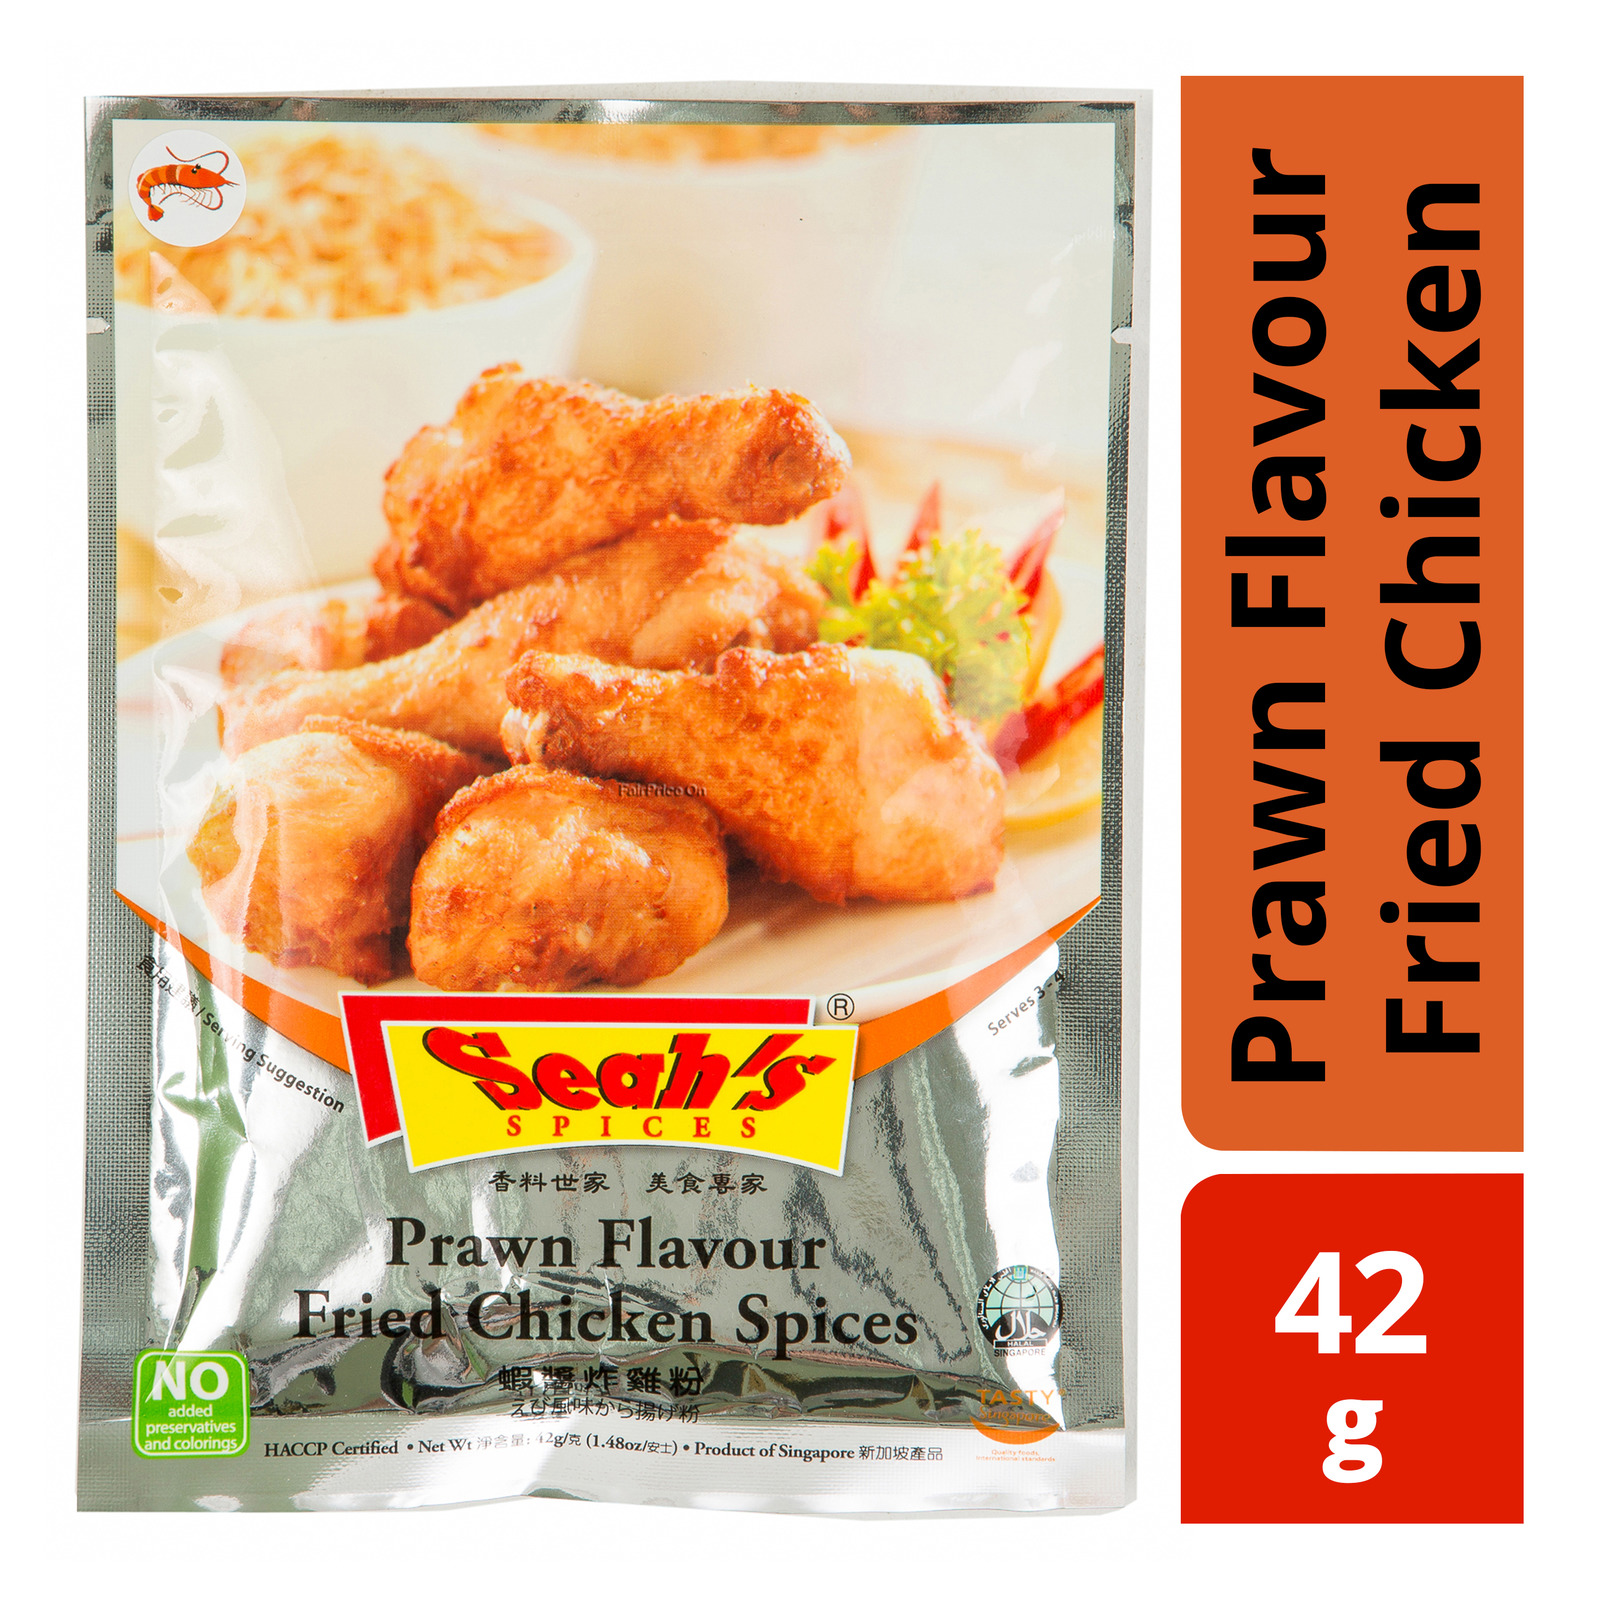 Seah's Spices Sachet - Prawn Flavour Fried Chicken